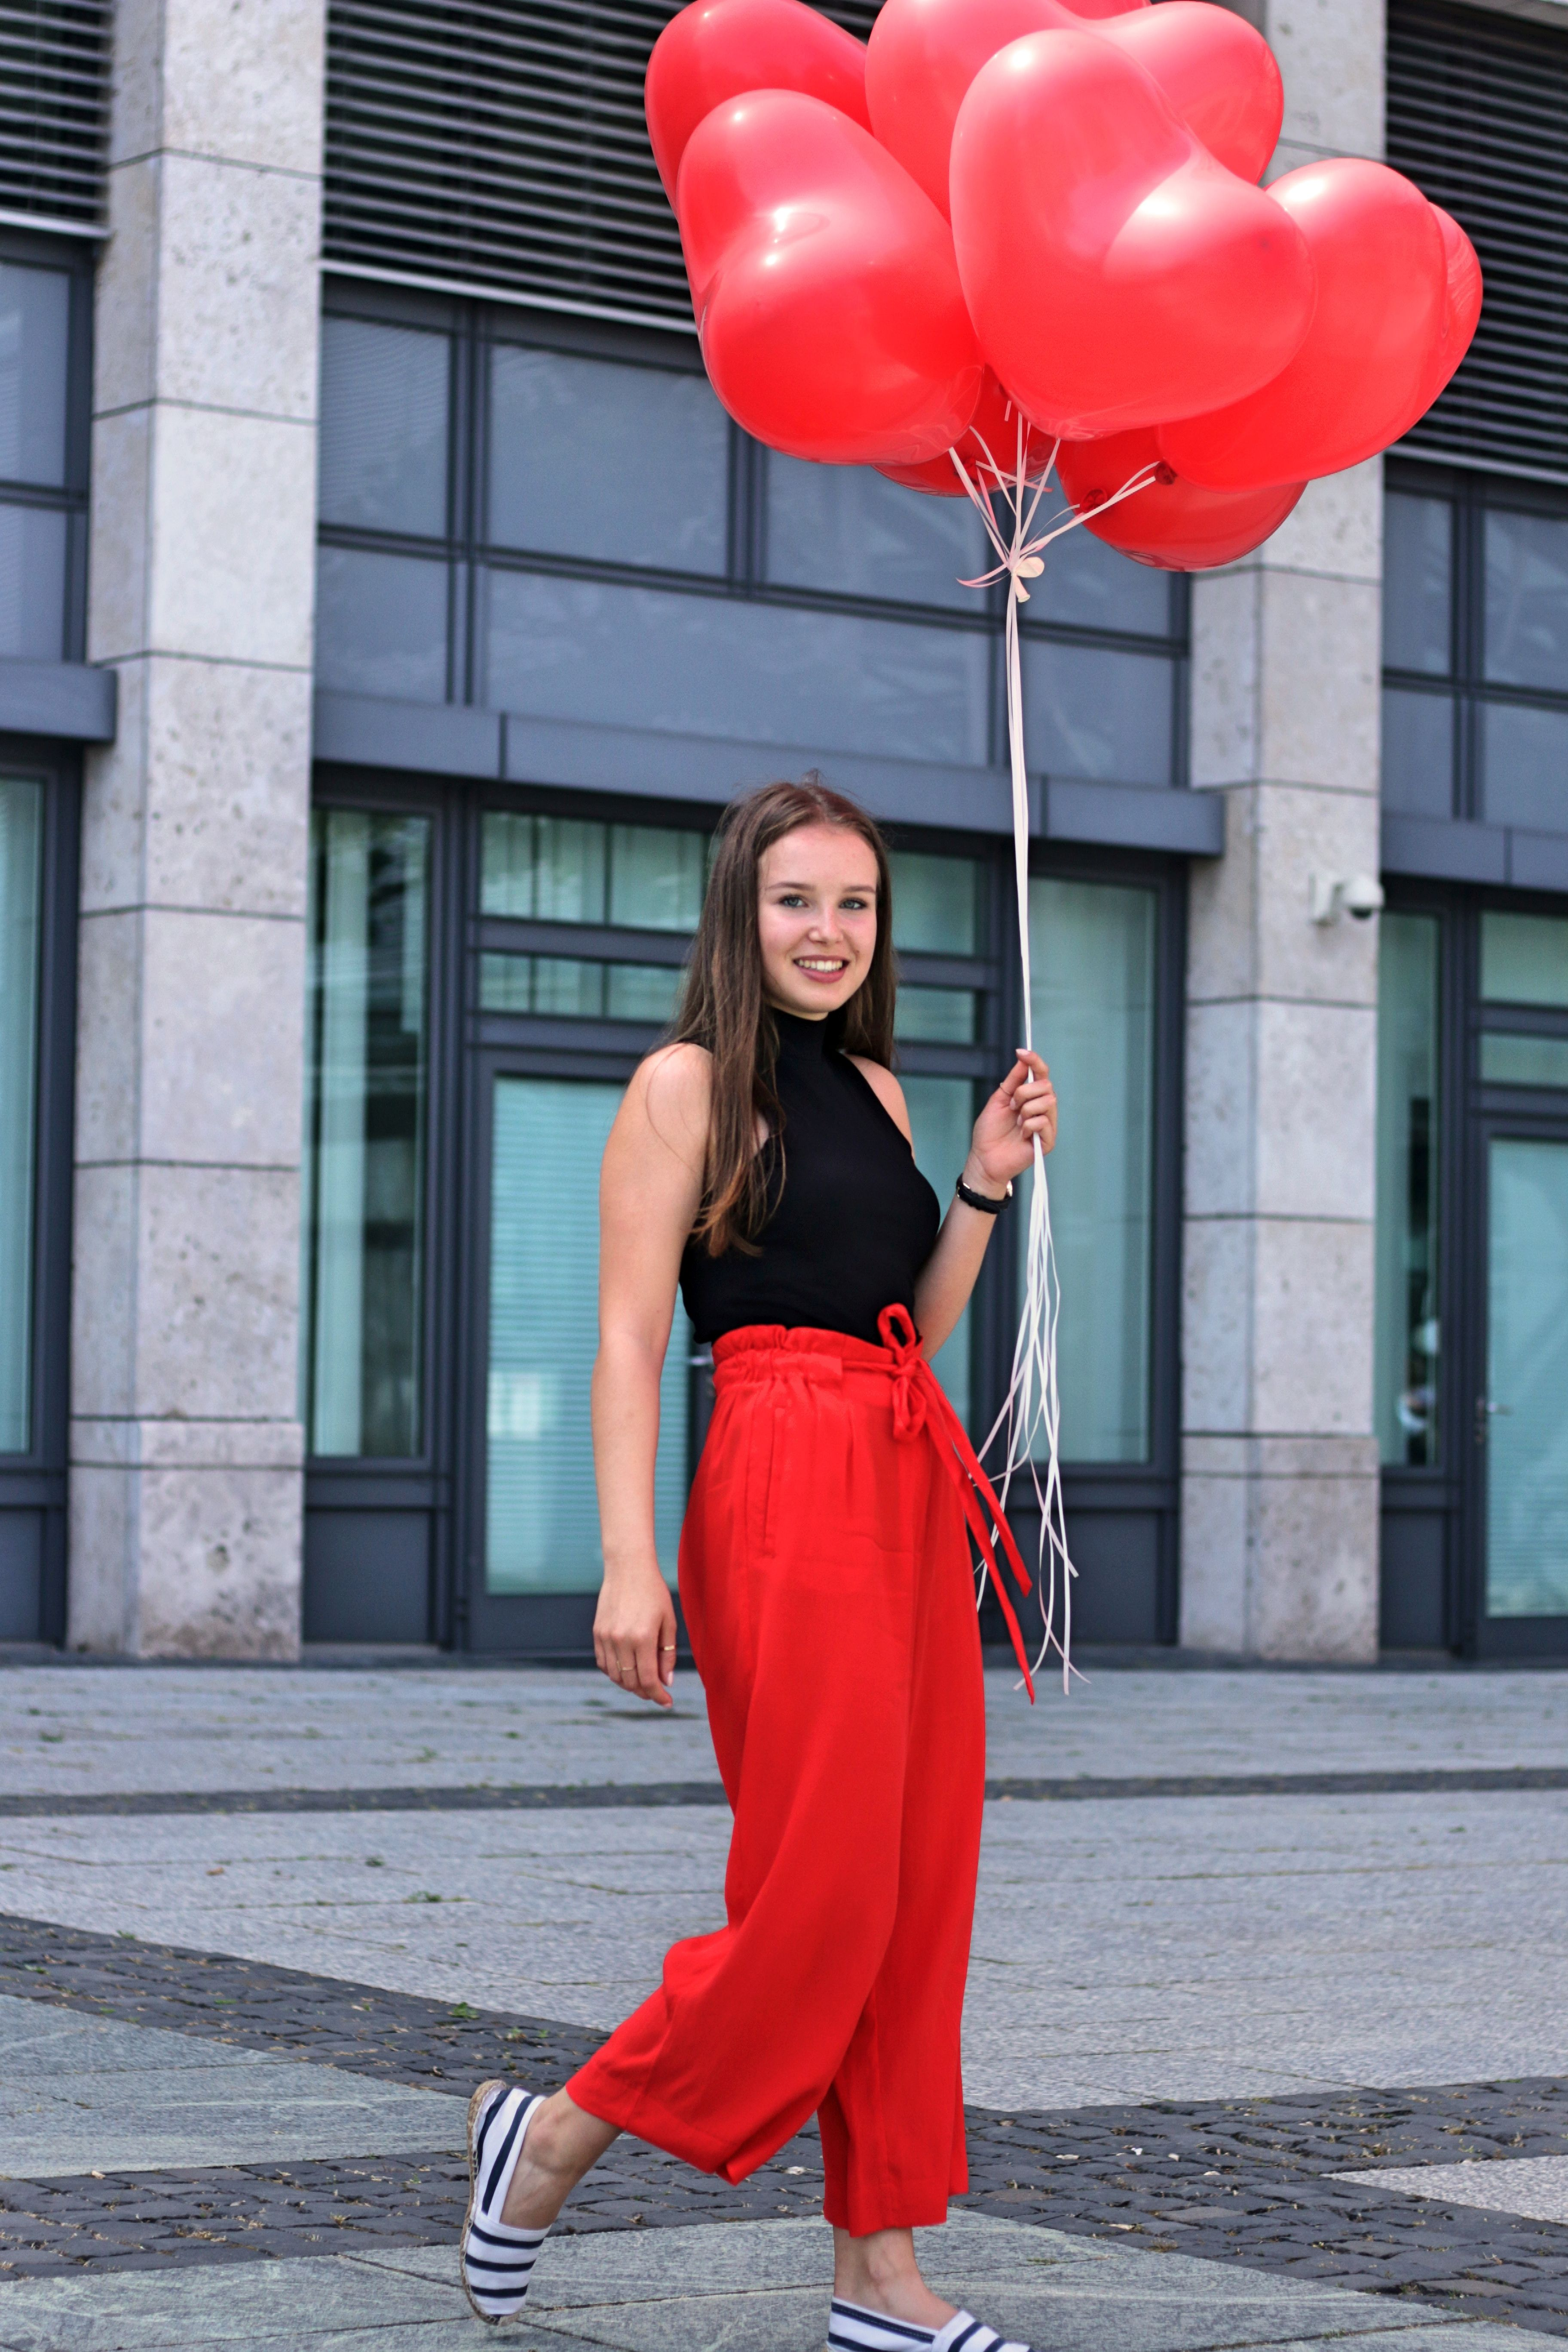 culotte hose rot, wie culottes kombinieren, how to wear, culotte stylen, trend style, hosenrock, summer 2017, streetfashion, fashion, outfit of the day, lookbook, stuttgart, outfit ideen, modeblog, outfit inspiration, geschnürter body schwarz high neck, geschnürtes oberteil, uhr schwarz gold damen günstig, armbanduhr gold, tasche schwarz gold klein, goldringe trend formen, fashion photography, fotoshooting, lifestyleblog, travelblog, Fotograf: Kritsana Lux, Instagram @kritsilux, Youtube kritsana lux, Rottenburg Fotograf, ceyourgoals by Celine, http://ceyourgoals.com © 2017